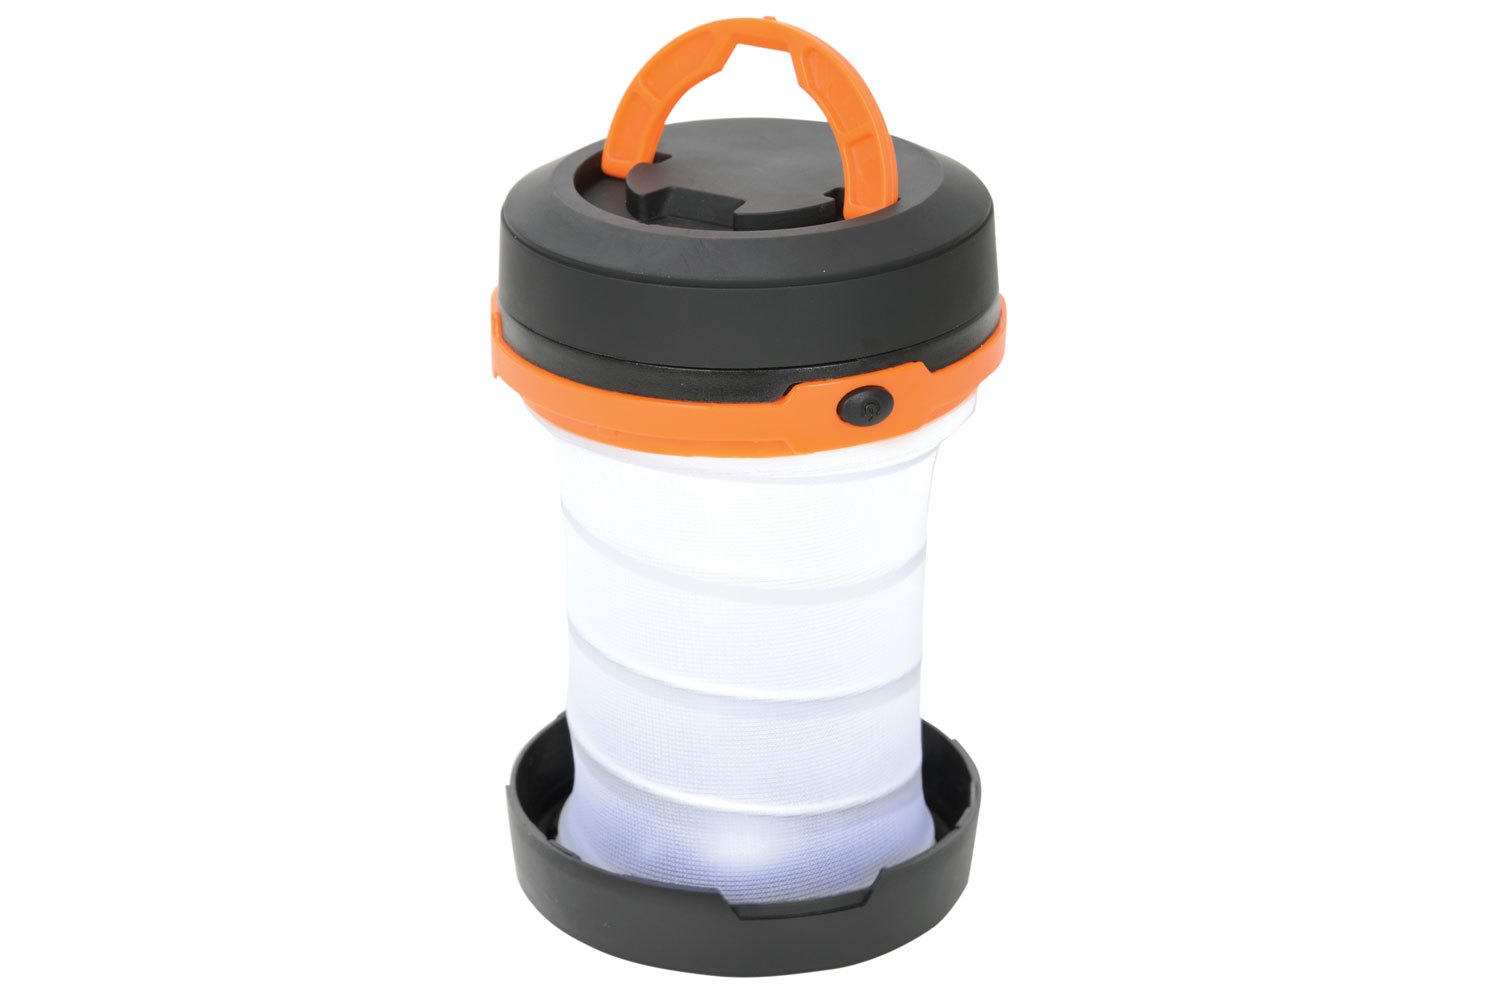 lyyt 1W LED Pop-Up Camping Lantern